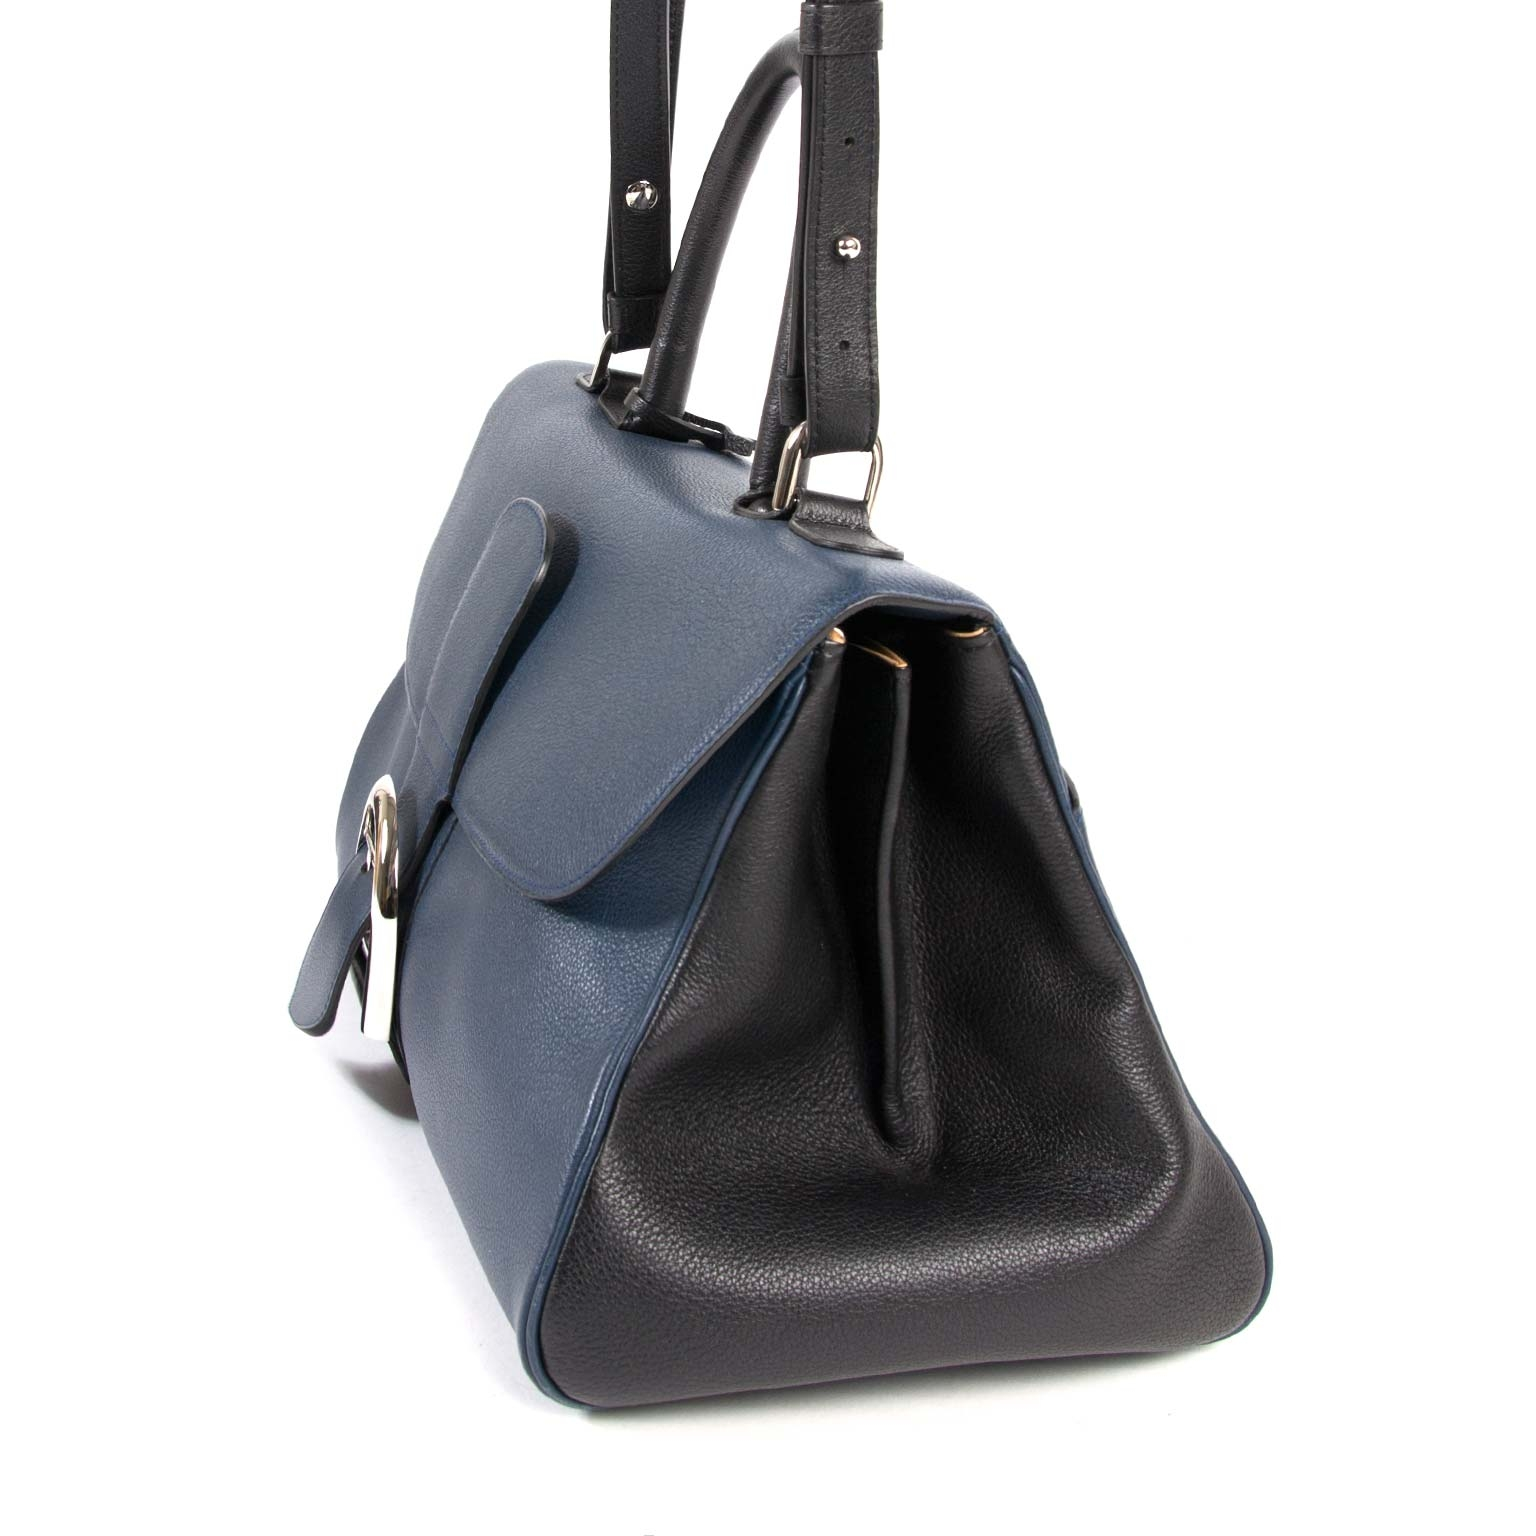 Delvaux Brillant East West Bicolor Bag Sellier Bicolore Calanque PA 00 for sale